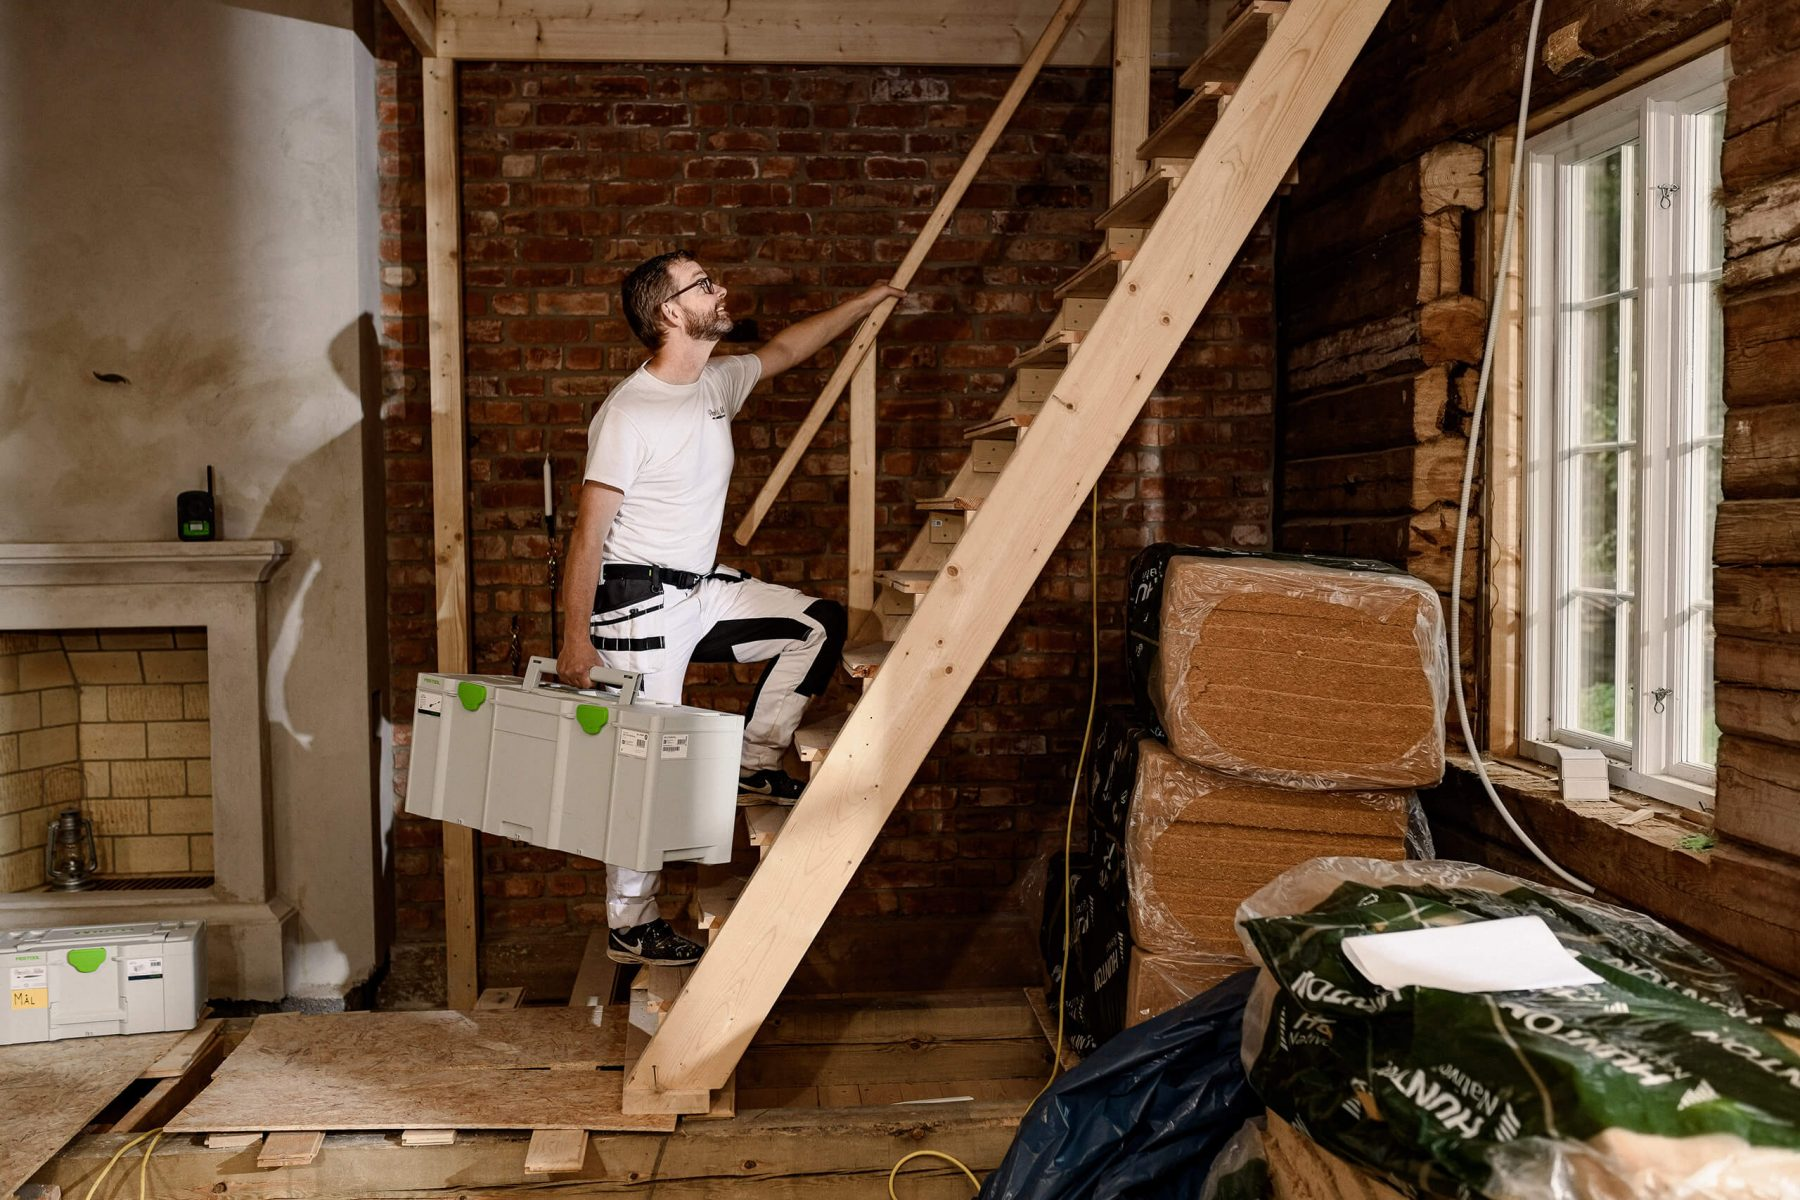 Man walking up the stairs with Festool gear